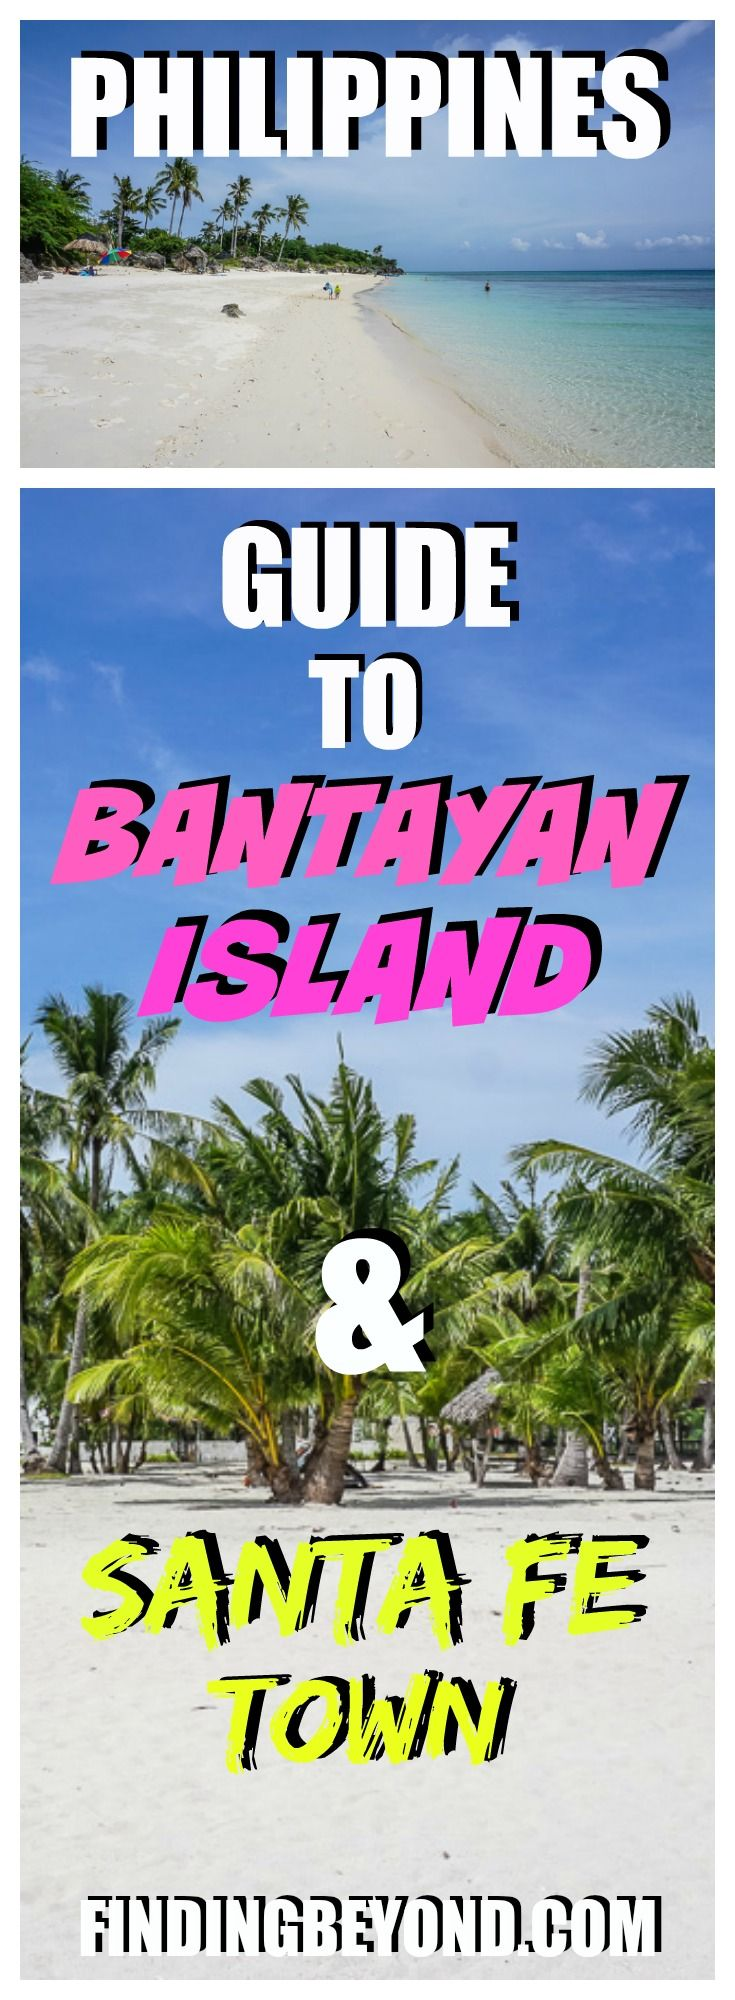 Bantayan Island, the perfect Philippine paradise? Read our Bantayan Island guide and Santa Fe information to help build your Bantayan island itinerary. | Best of the Philippines | Top Islands to visit in the Philippines | Backpacking in the Philippines | Philippines on a Budget | Paradise Beach on Bantayan Island | Islands to visit near Cebu | Top beaches in the Philippines |